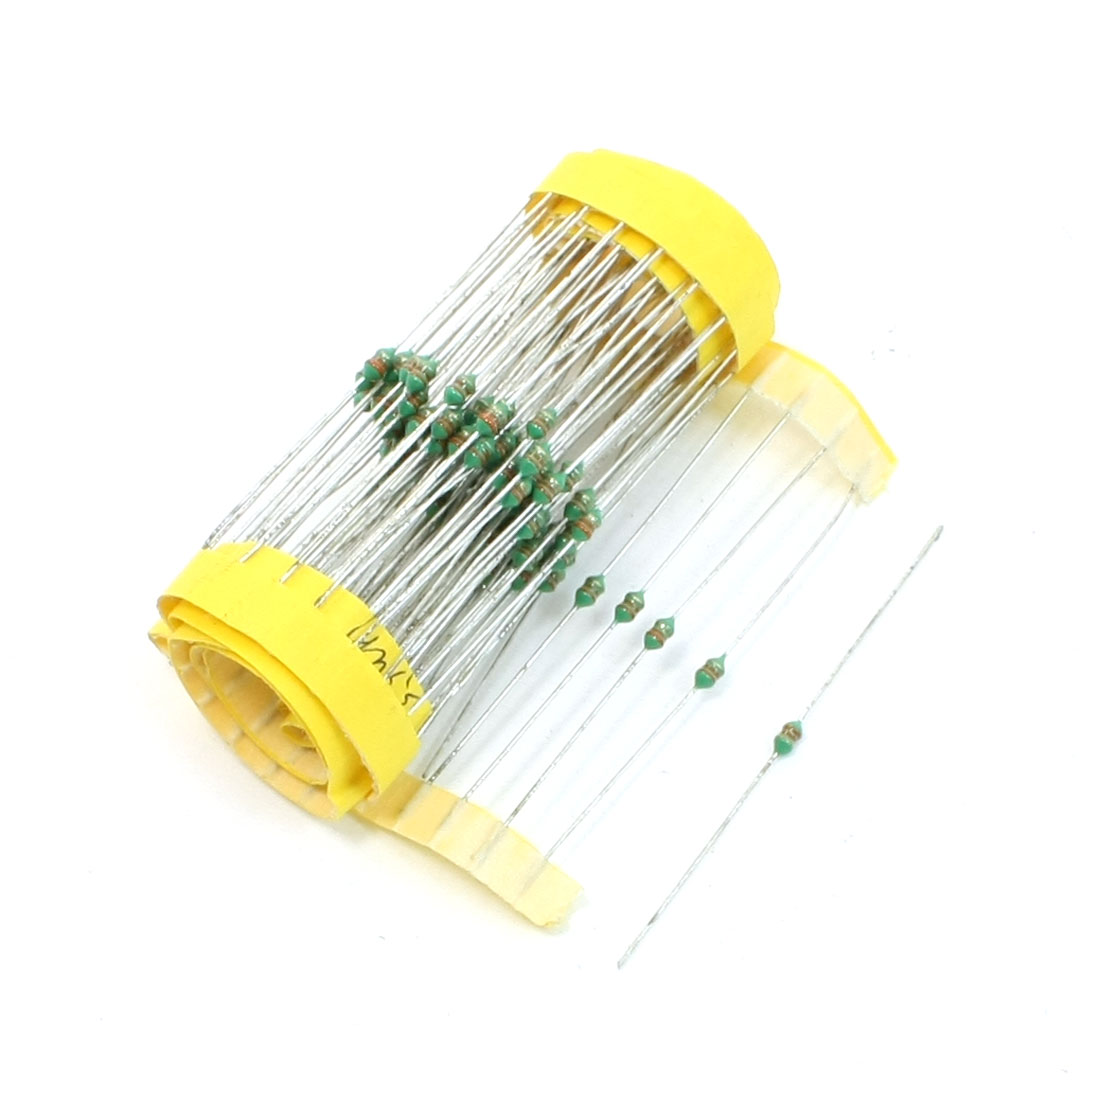 Replacement 3 Color Loop Axial Leads Fixed Inductors 3.3uF 1/8W 100 Pcs